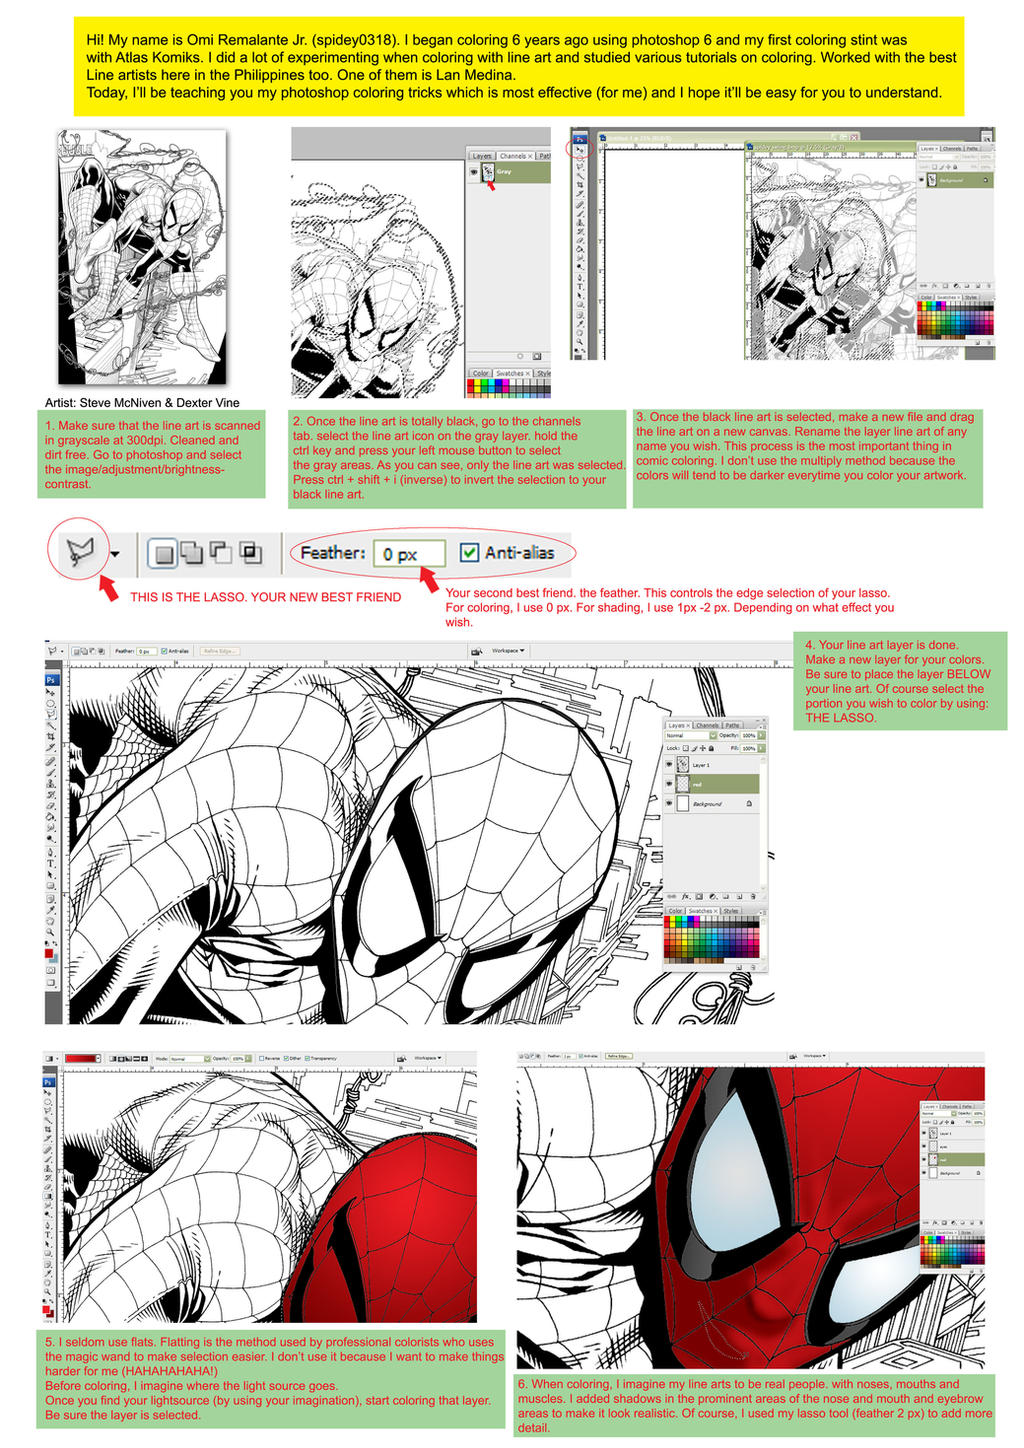 Comic Coloring Tutorial Prt1 By Spidey0318 On DeviantArt